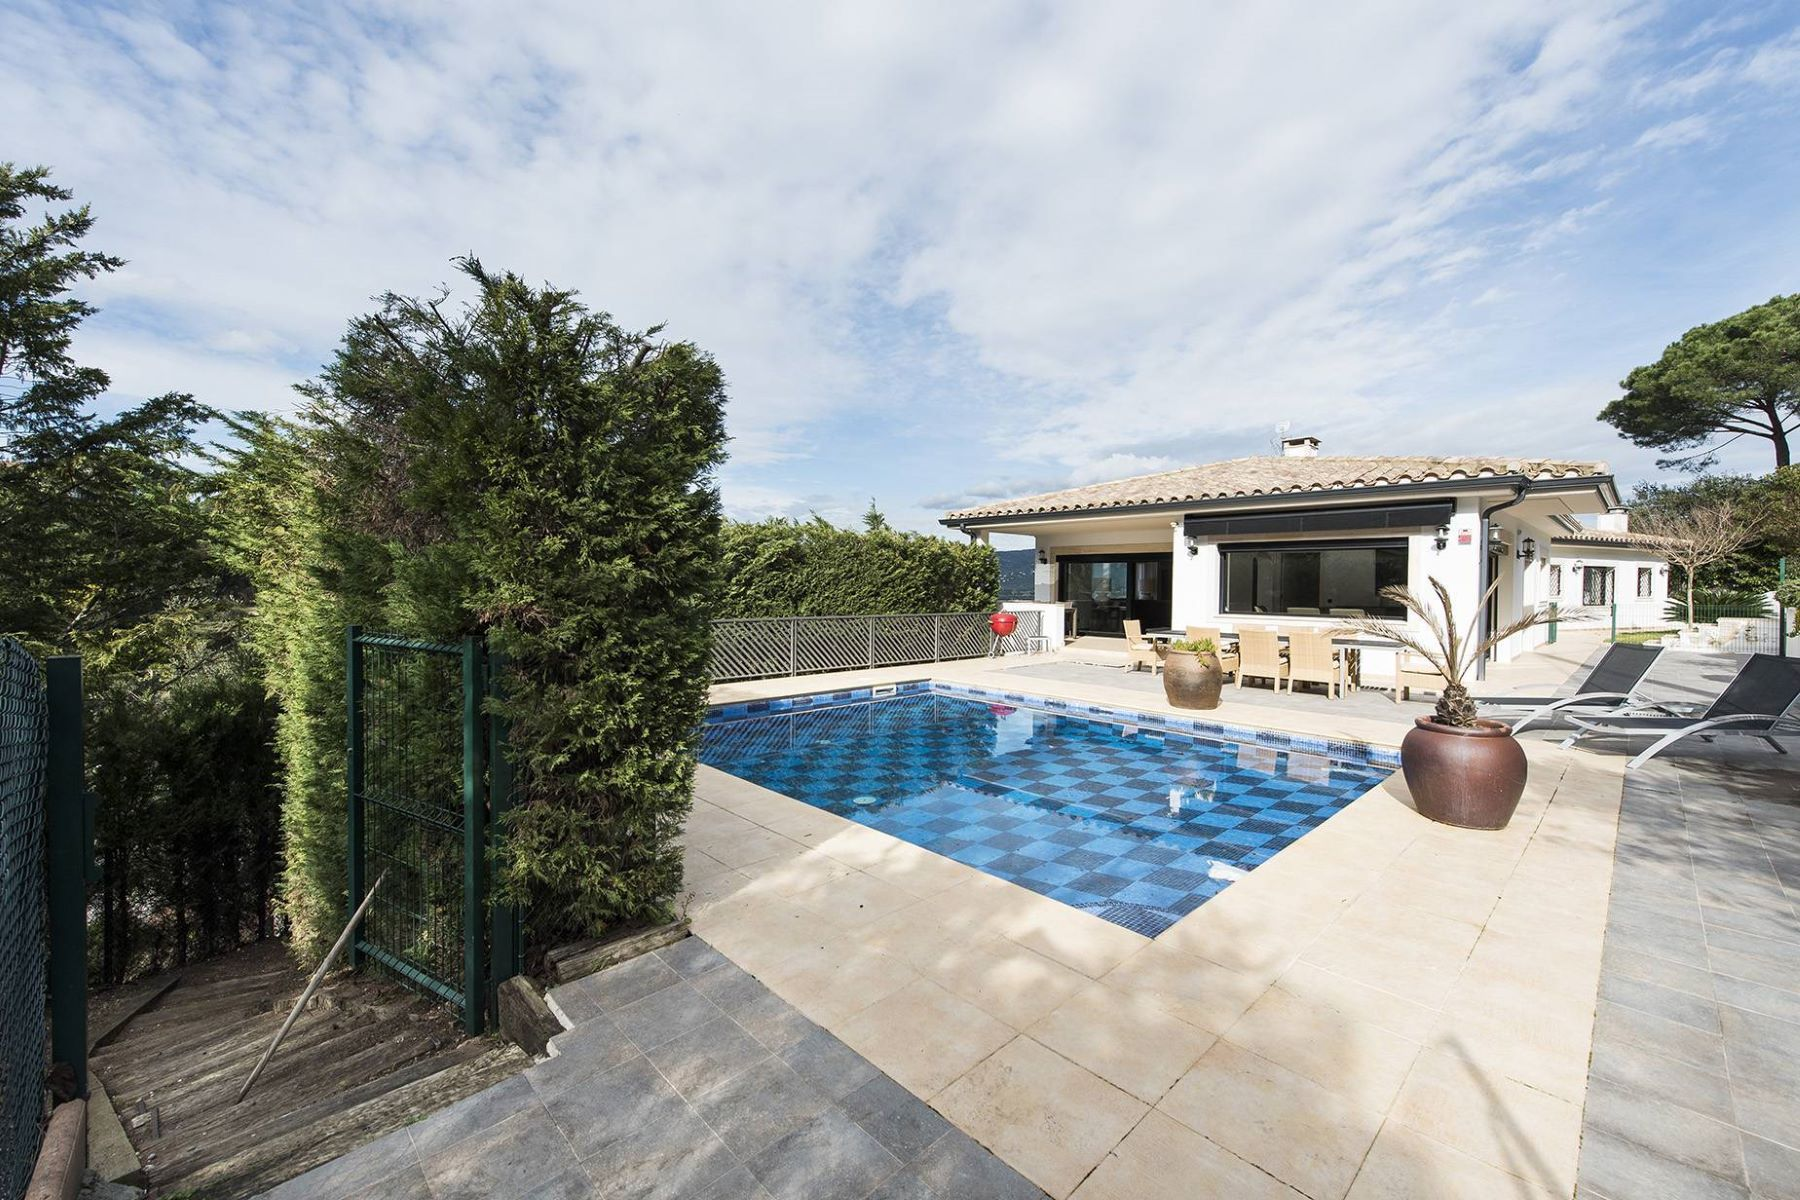 独户住宅 为 销售 在 Beautiful Mediterranean house near the exclusive Costa Brava Golf 圣克里斯蒂娜, 科斯塔布拉瓦, 17246 西班牙